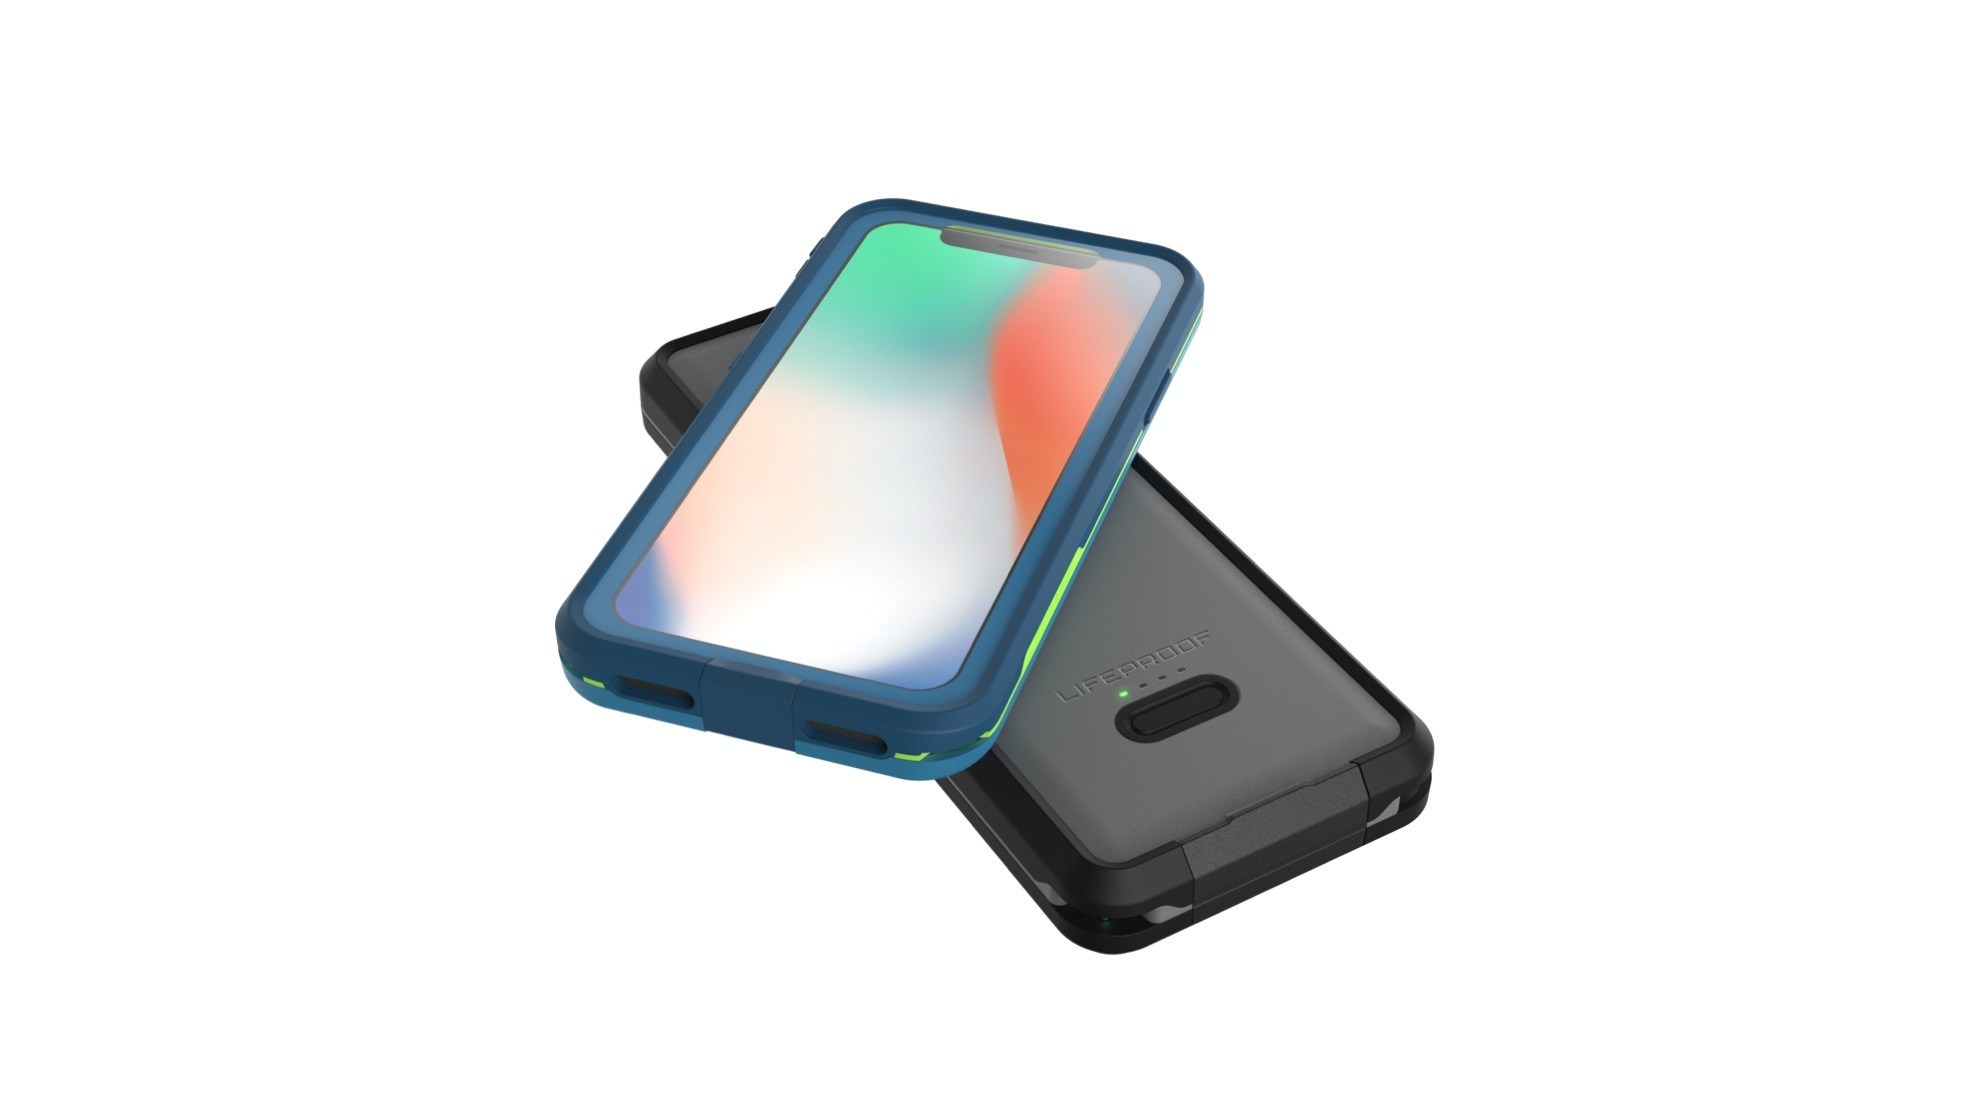 Built with a 10,000-milliamp battery, the wireless Power Pack 10 rapidly charges devices to keep you from being tied down.